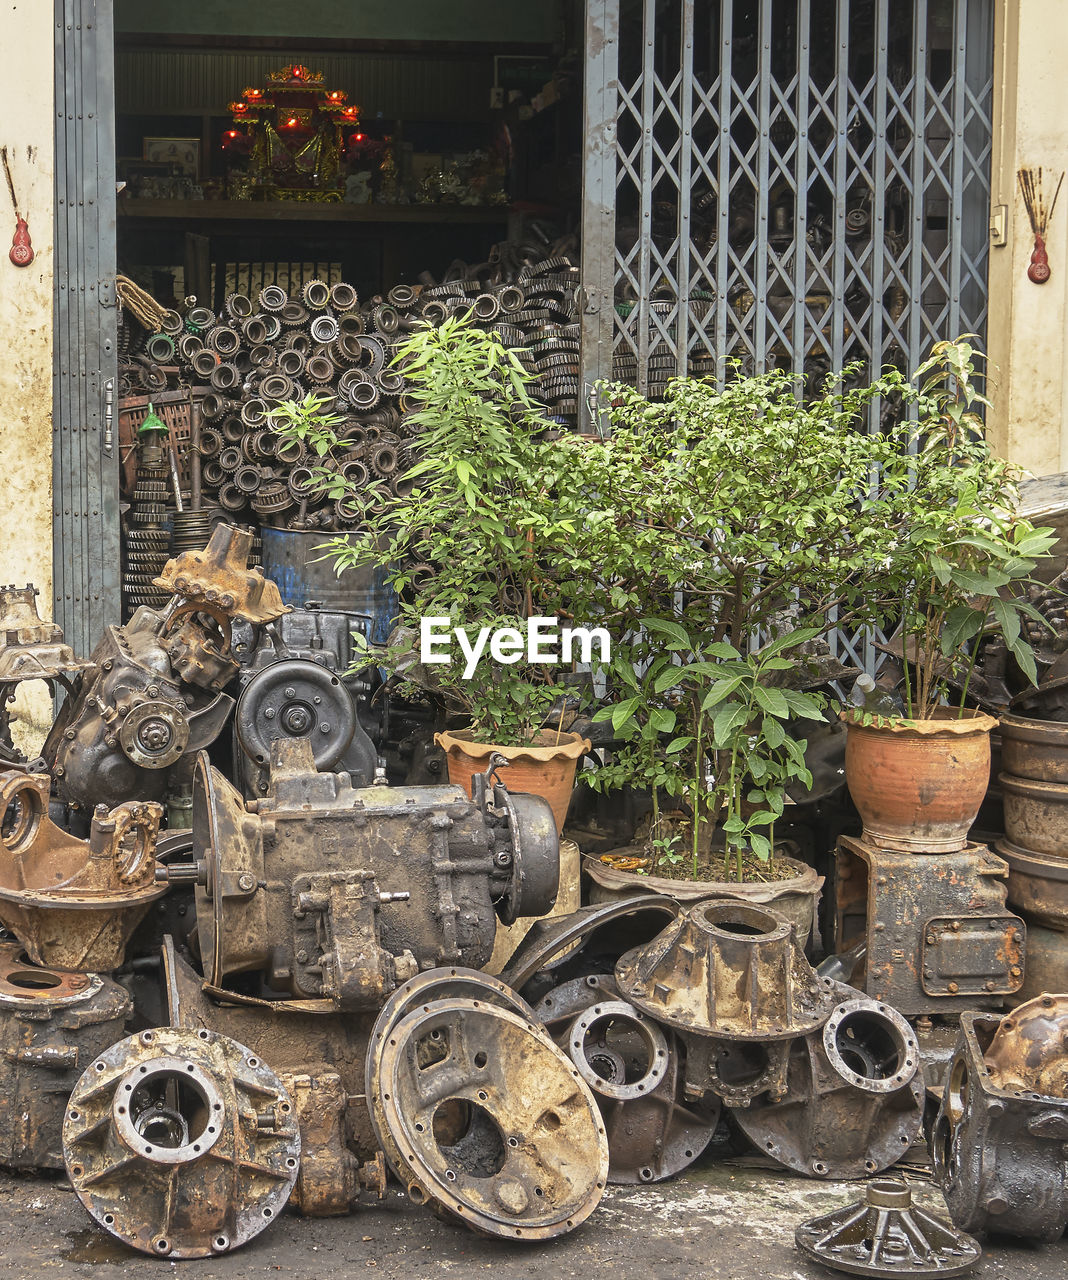 plant, potted plant, day, growth, no people, nature, metal, outdoors, architecture, built structure, building exterior, large group of objects, building, choice, gate, fence, front or back yard, green color, rusty, container, flower pot, wheel